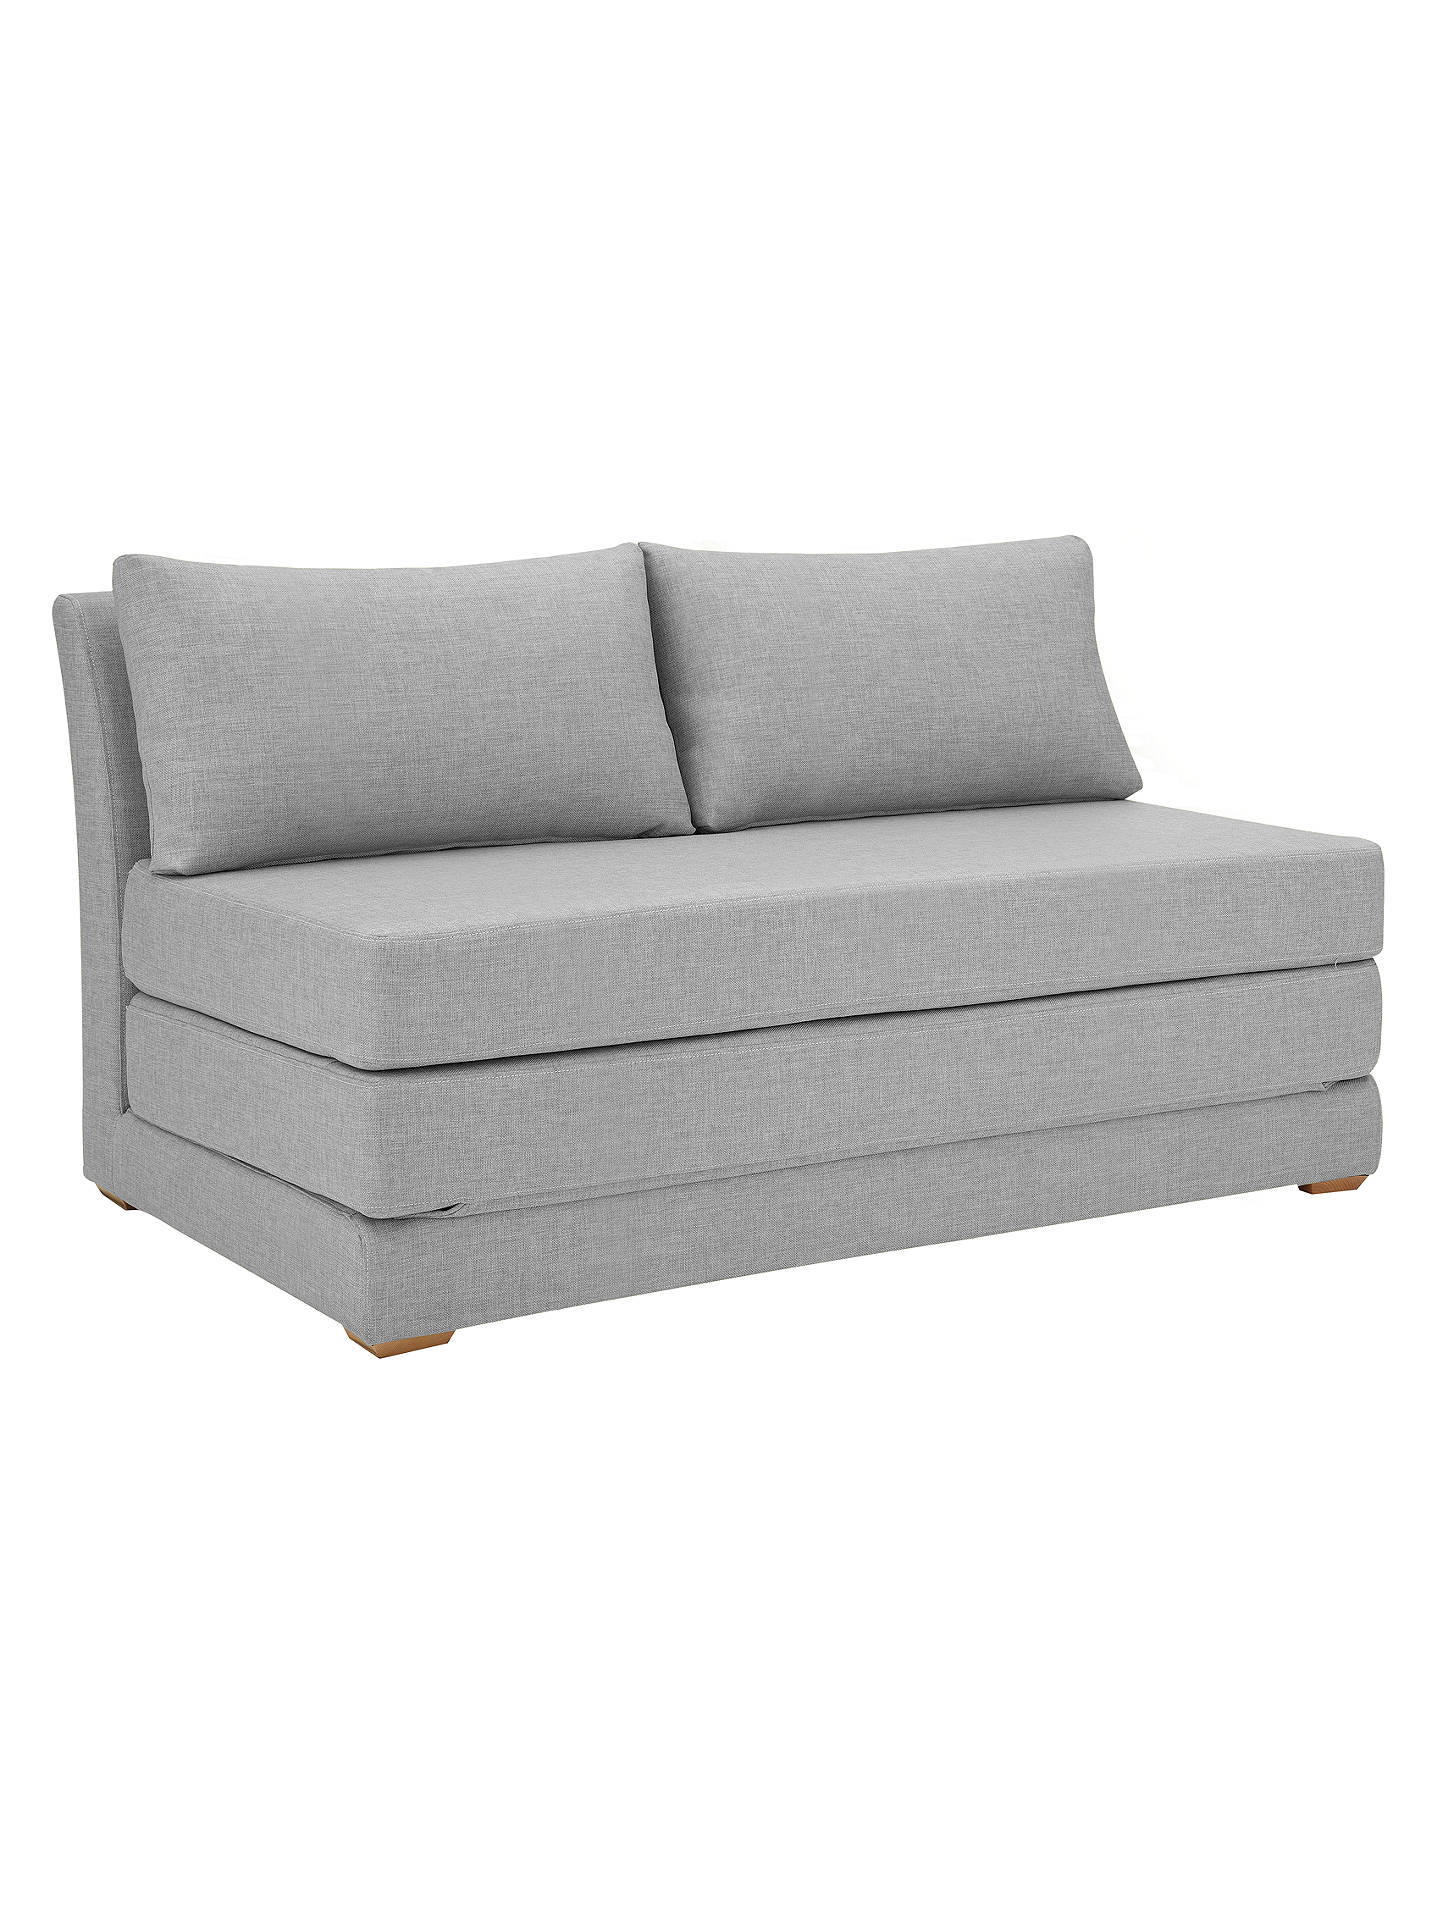 John Lewis Kip Small Sofa Bed Fraser French Grey At John